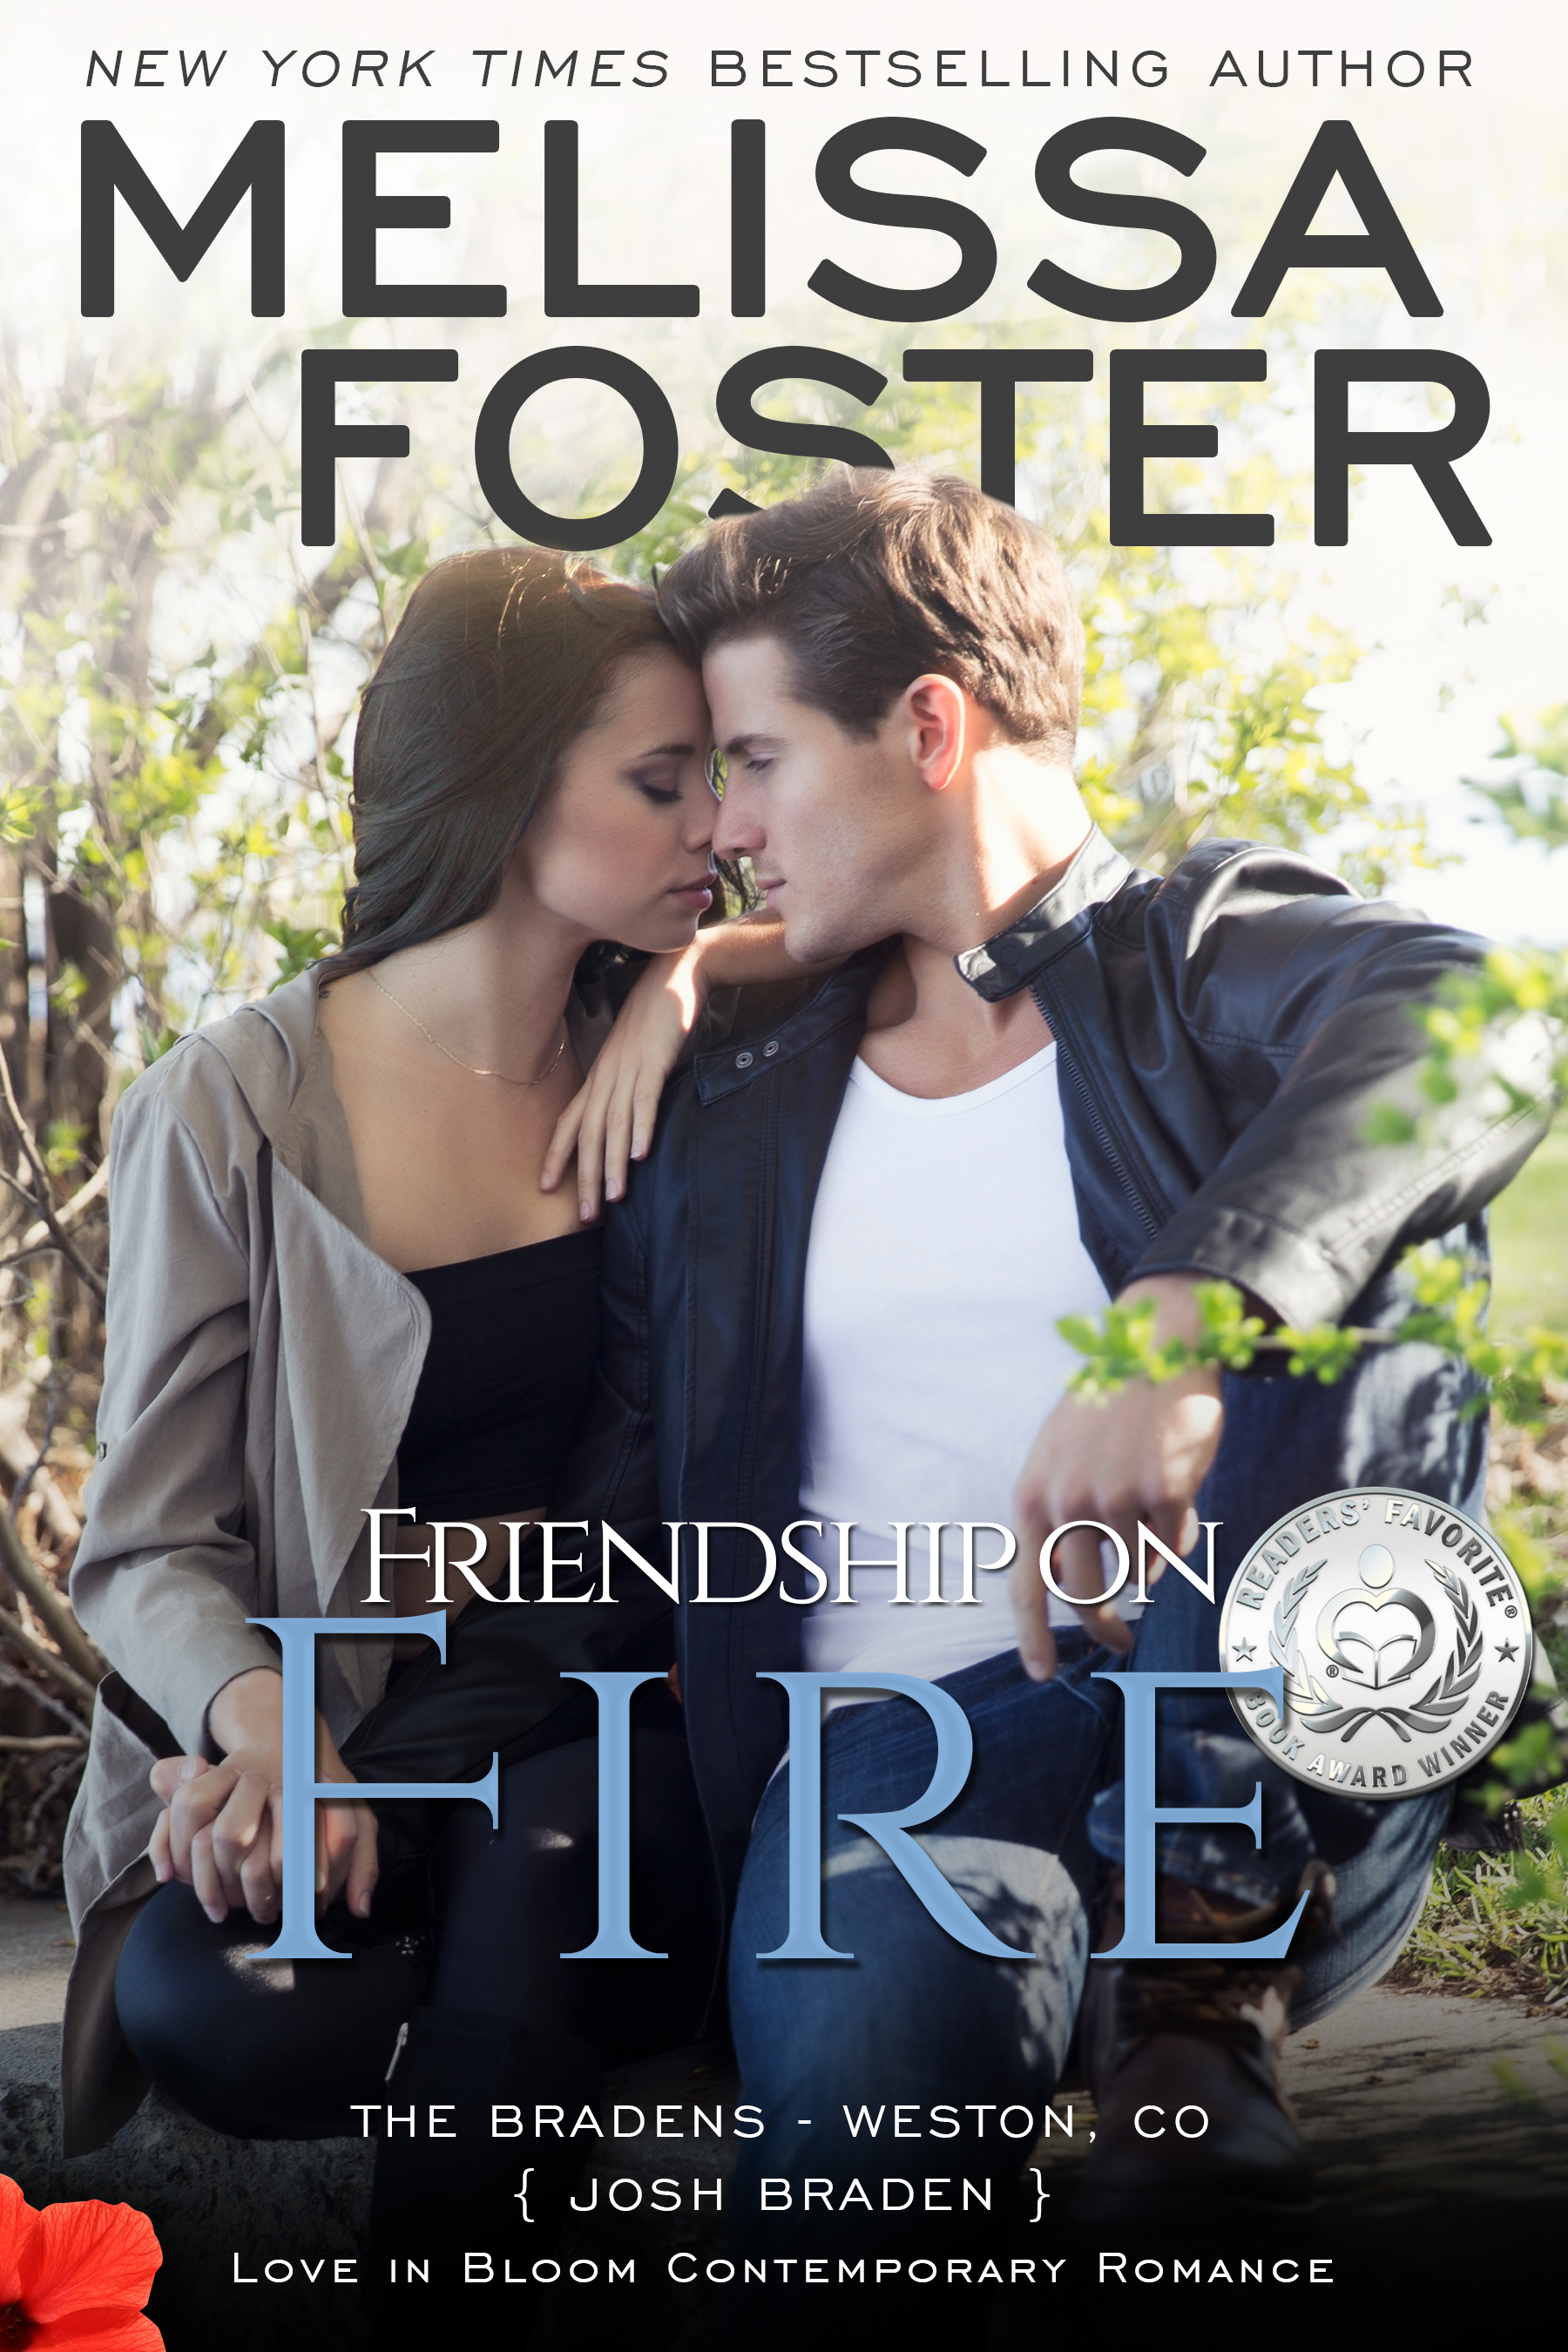 Friendship on Fire (Love in Bloom #6; Love in Bloom: The Bradens #3; The Bradens at Weston, CO #3)